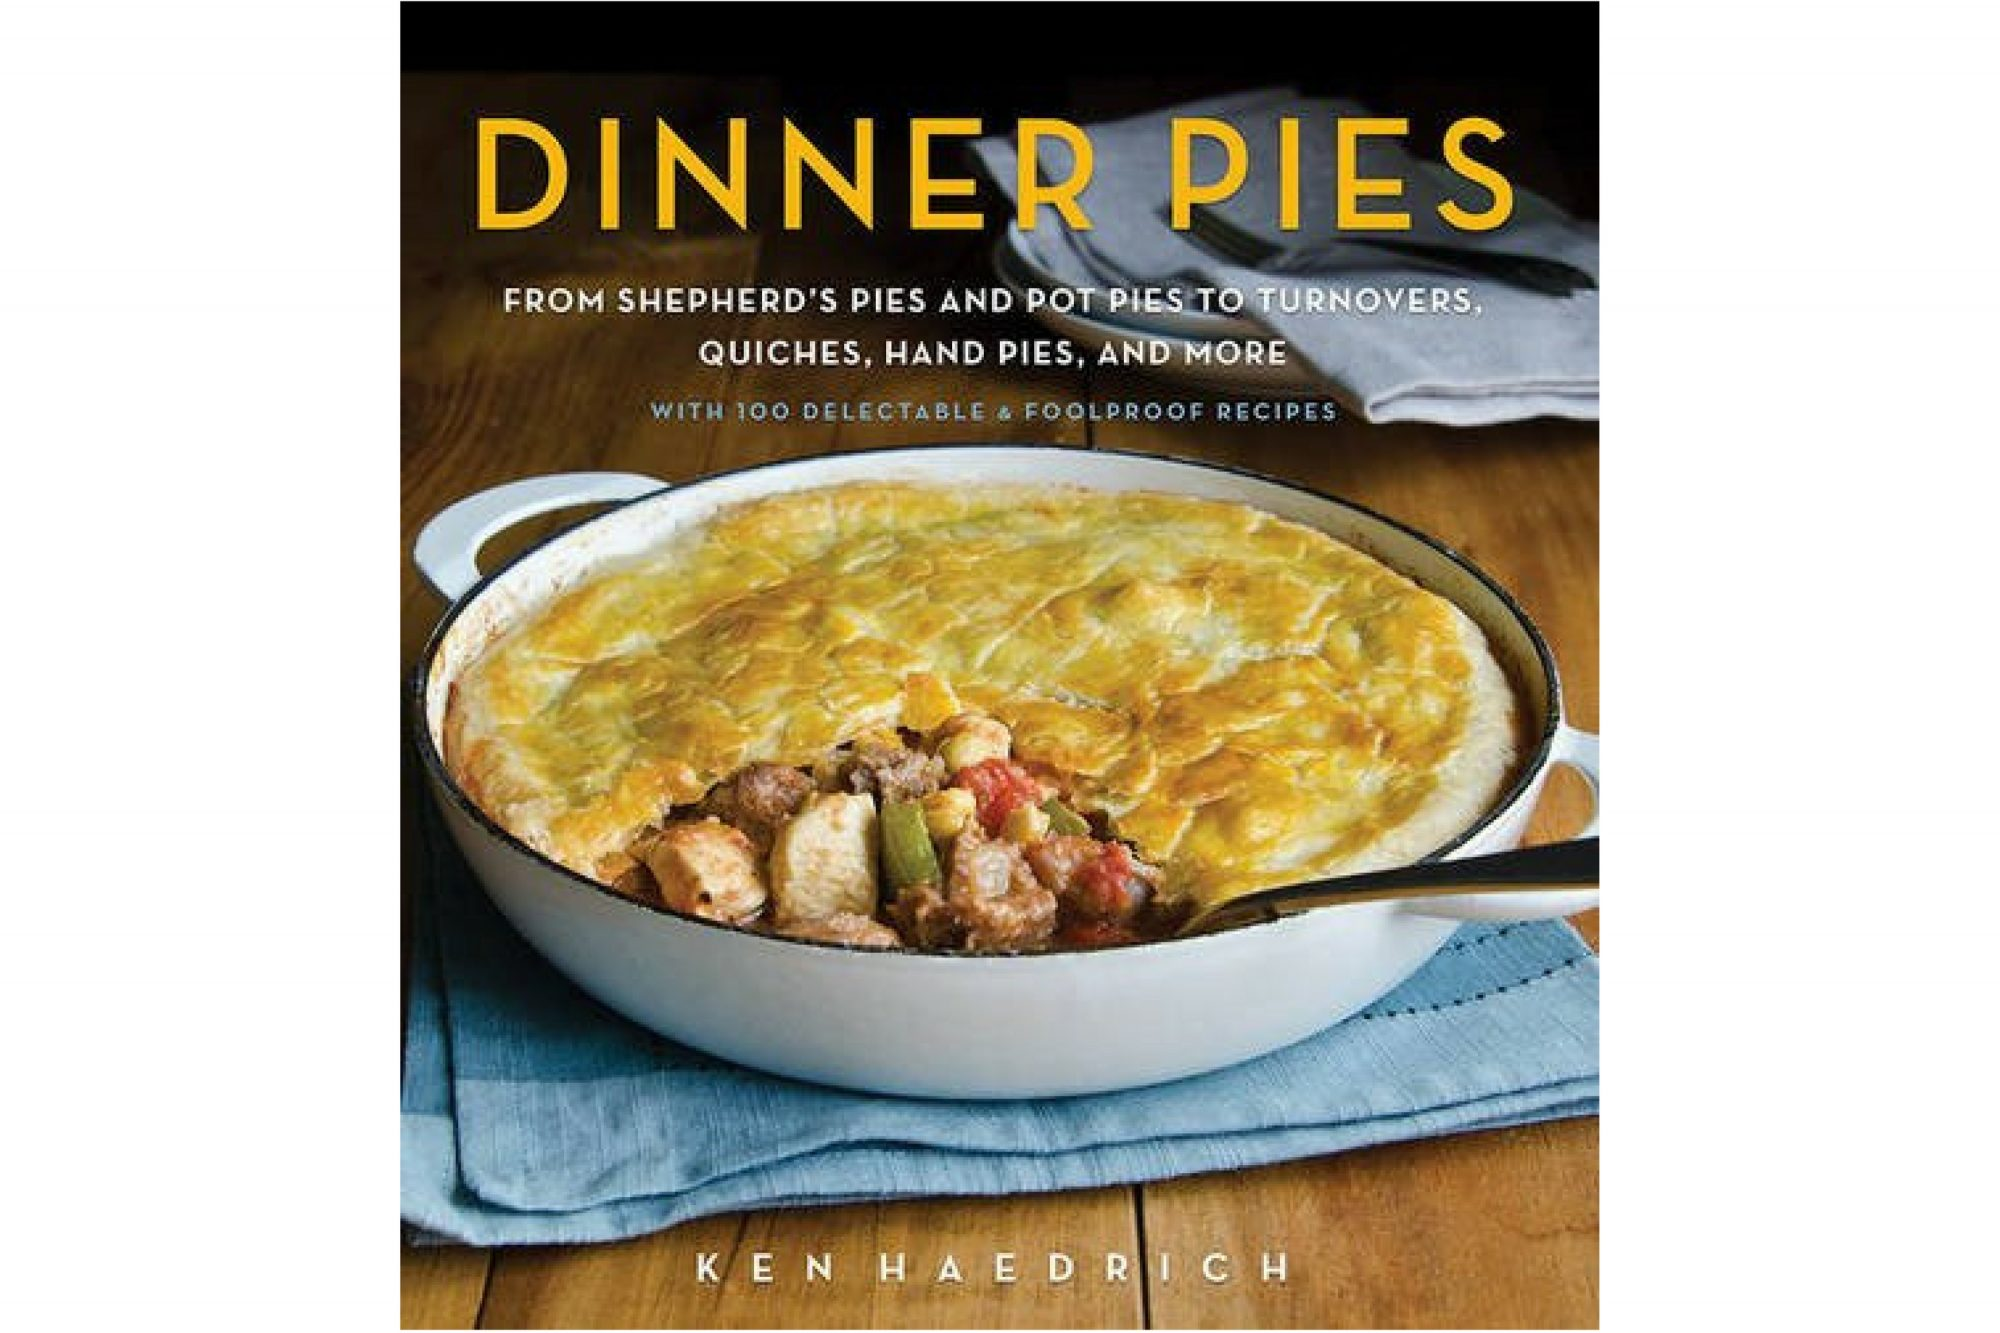 Dinner Pies Cookbook